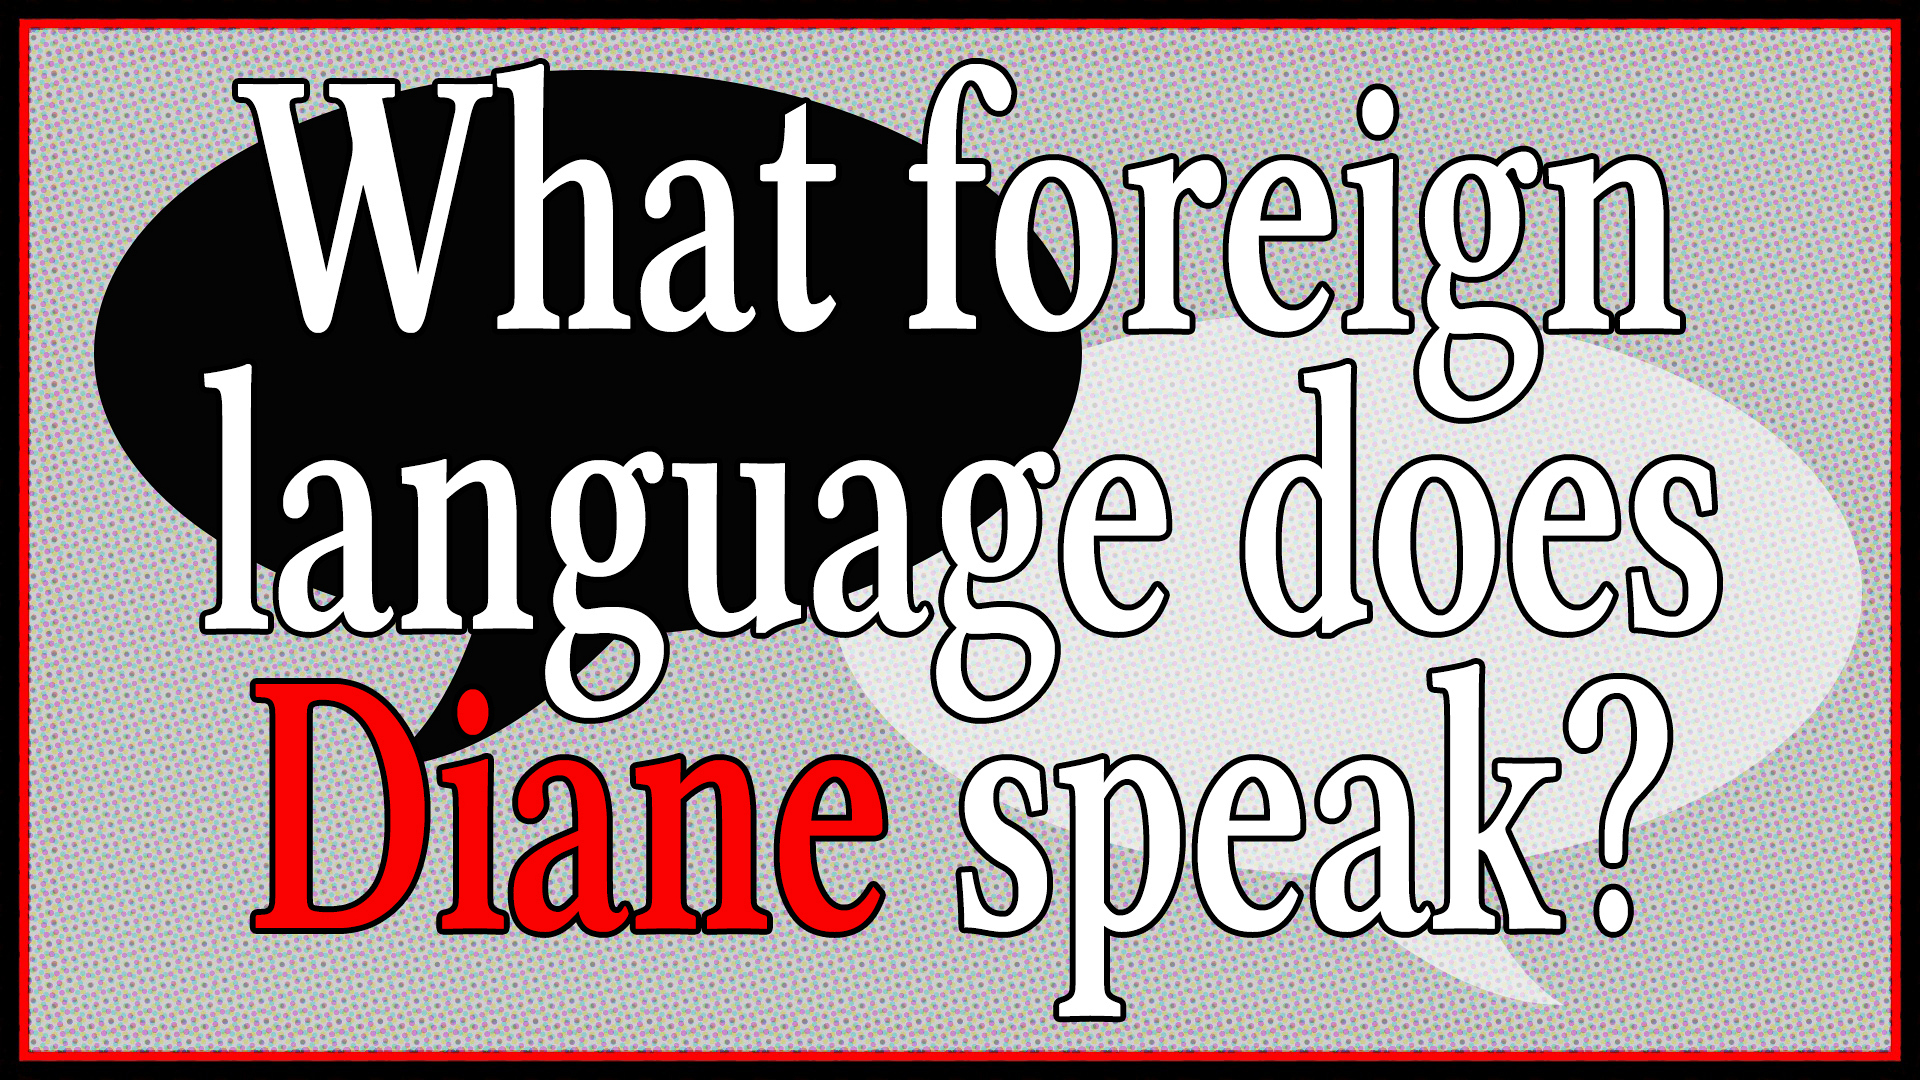 What foreign language does Diane speak?